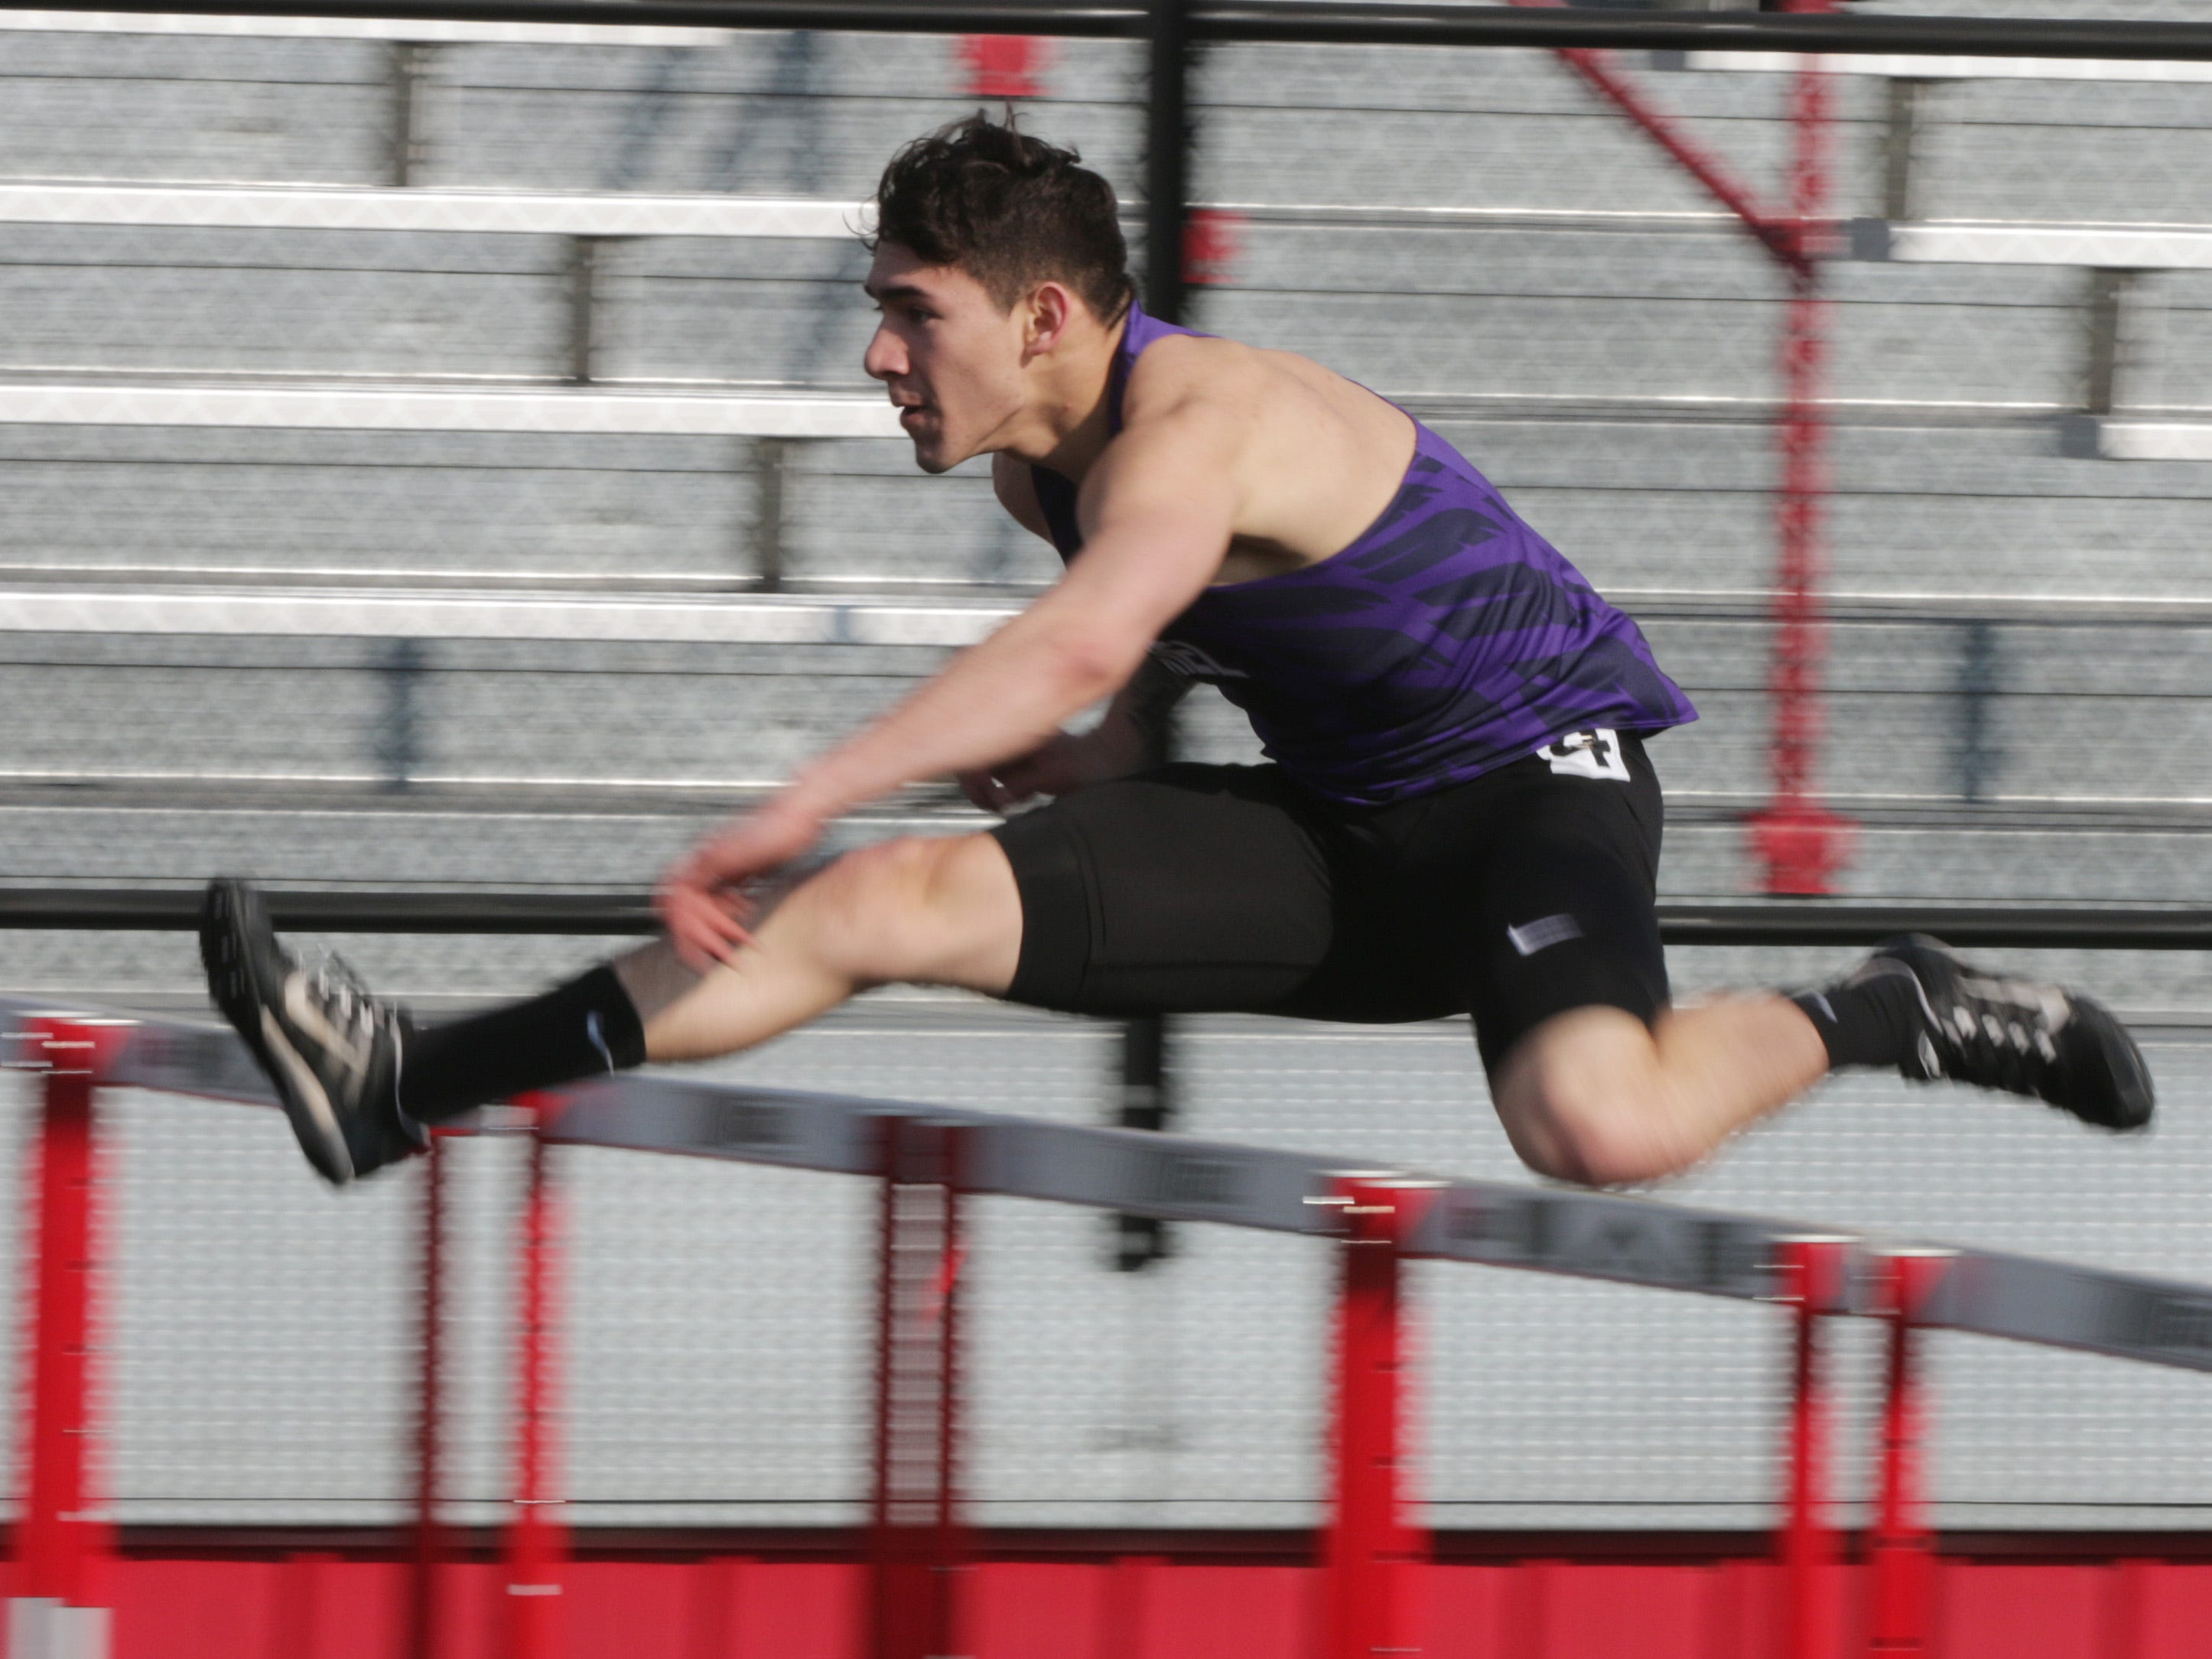 Kiel's Elio Alzate flies over the hurdles during the 110 high hurdles event at the Flying Dutchmen Invite, Friday, April 5, 2019, in Oostburg, Wis.